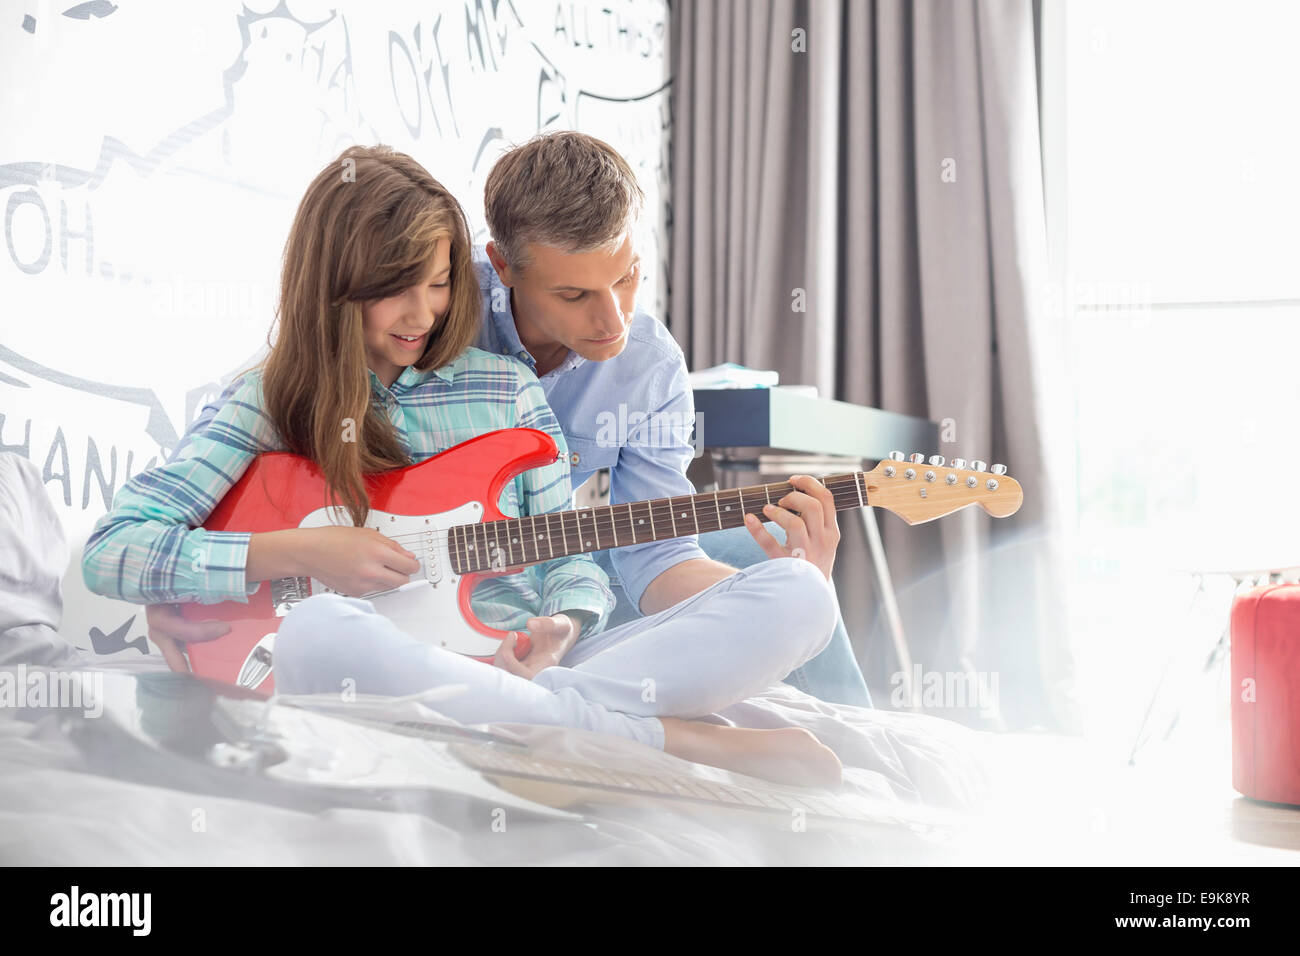 Father teaching daughter to play electric guitar at home - Stock Image